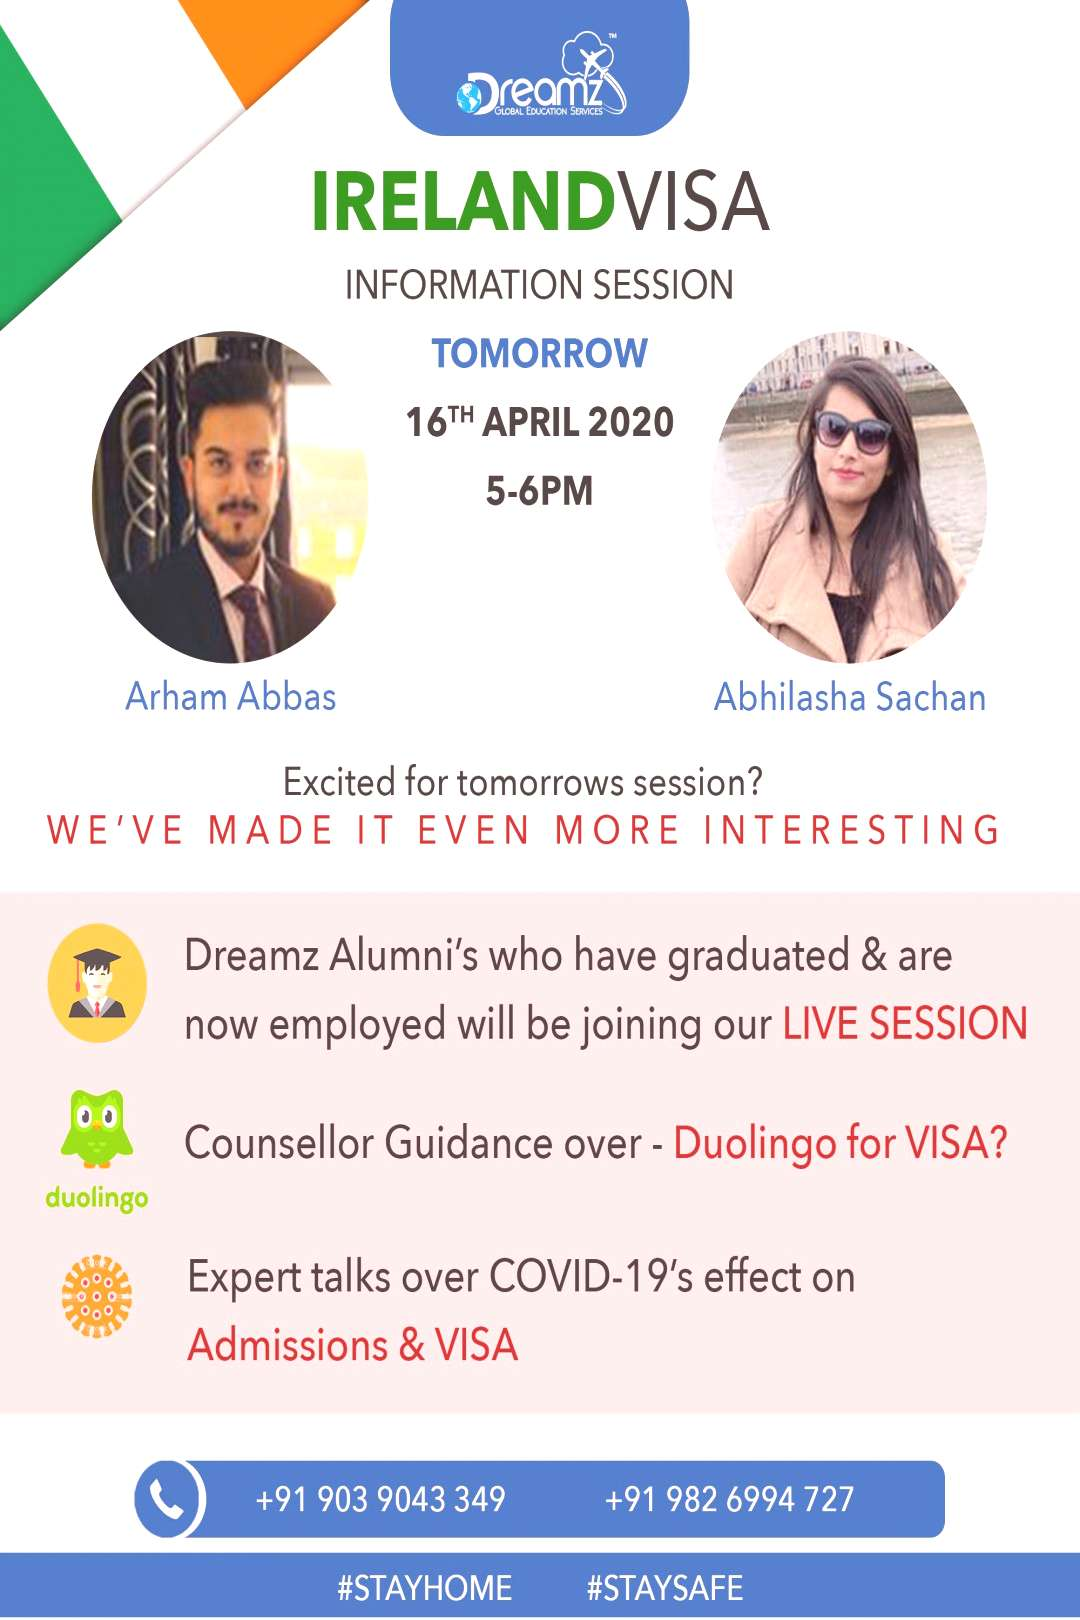 ‪DID YOU HEAR THIS ?‬ ‪We have made our tomorrow's ‬ ‪